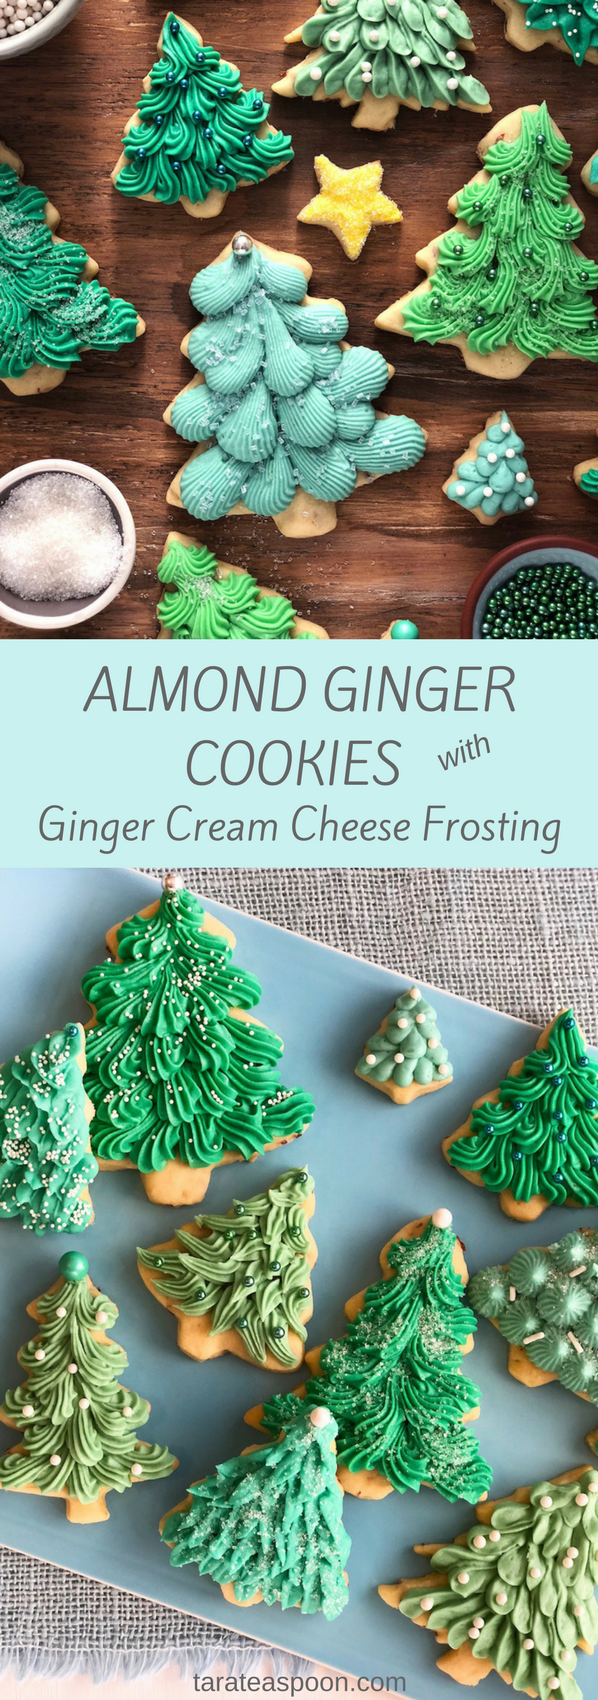 Almond Ginger Cookies with Cream Cheese Frosting #cookies